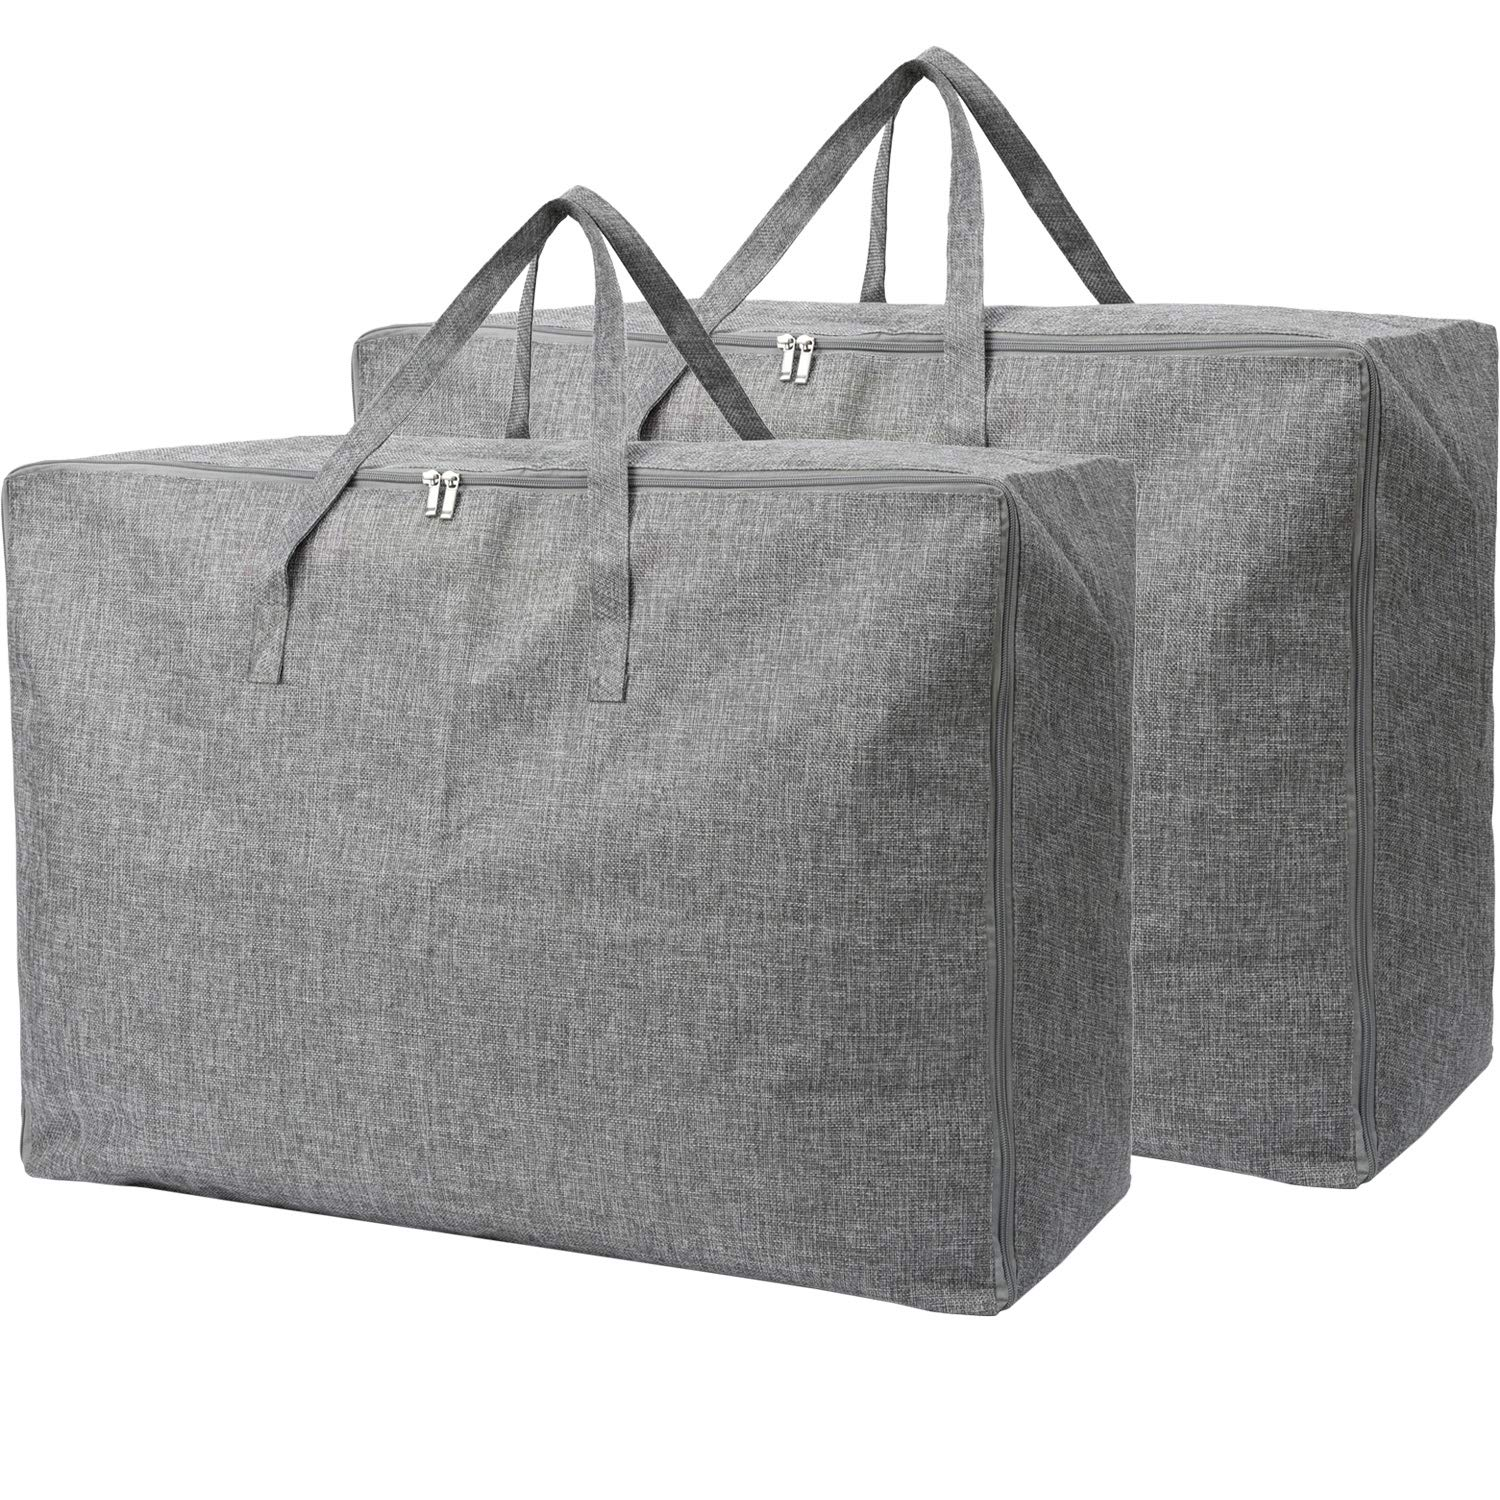 105L Extra Large Lead Free Storage Bags Organizer Bag-2 Pack-Sturdy, No Smell, Moisture Proof Linen Fabric, Carrying Bag, Camping Bag, Clothes Bag for Bedding, Comforters, Pillows, House Moving.(Grey)